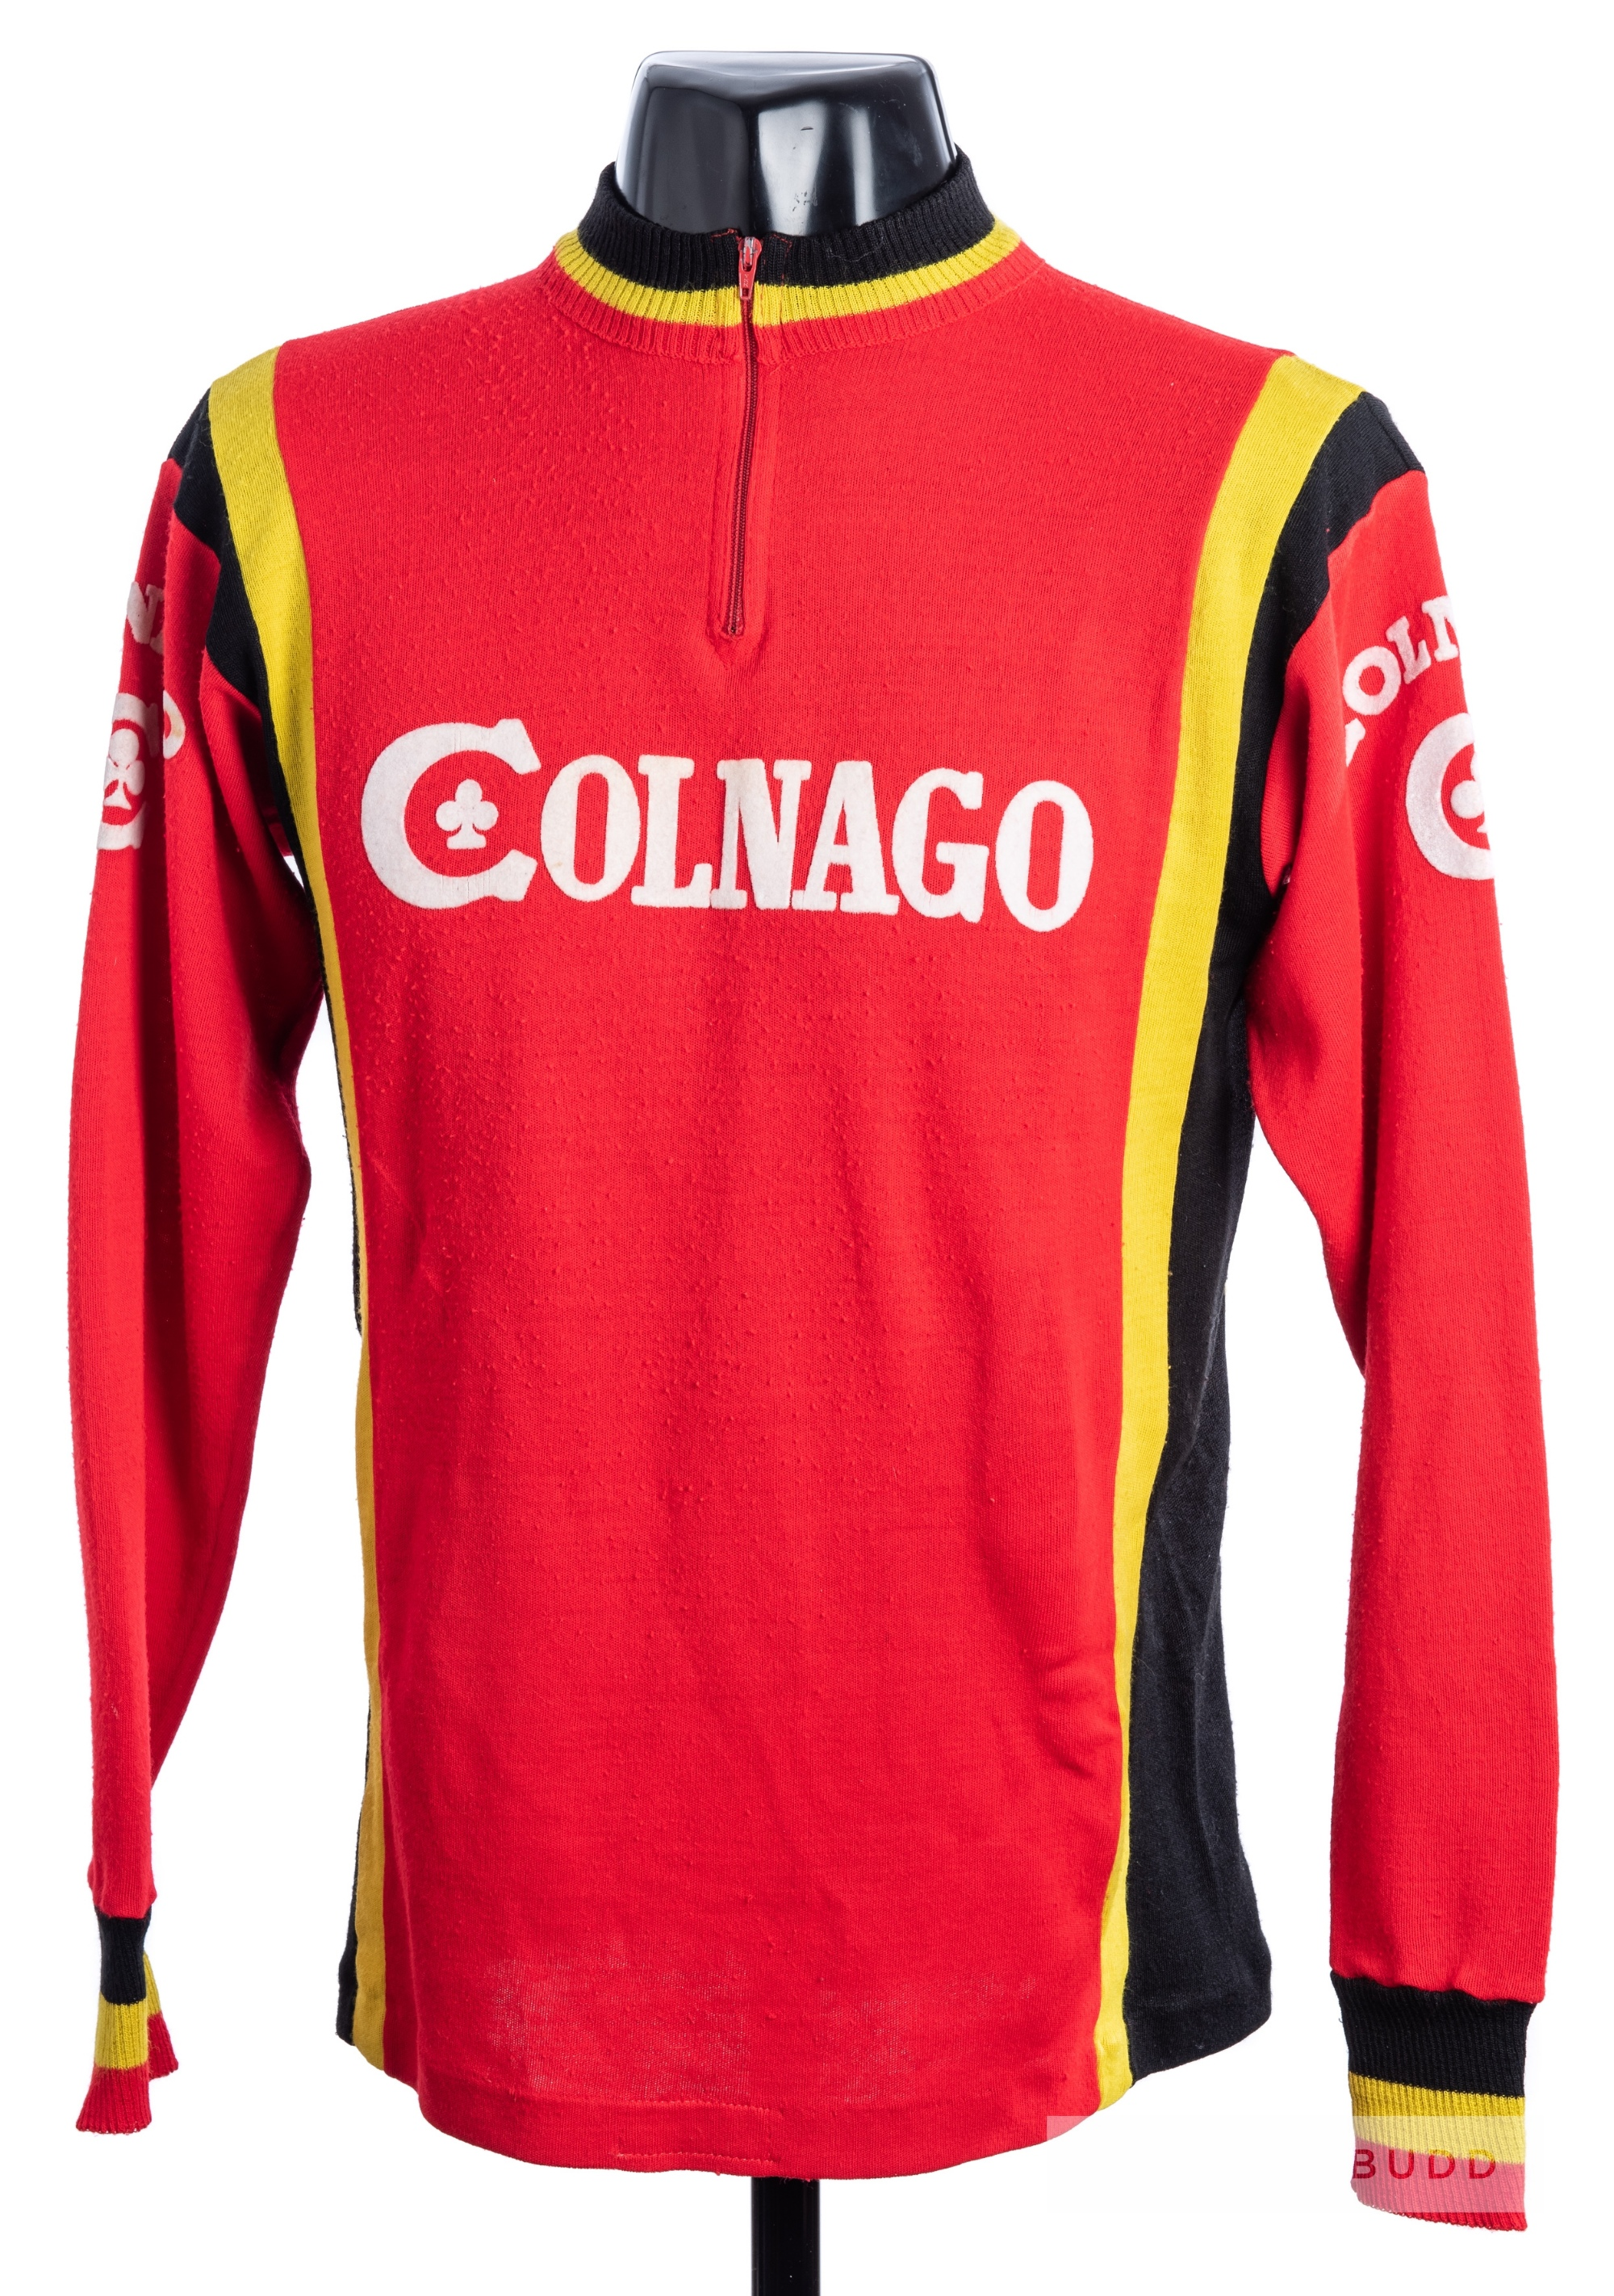 1977 red, yellow and black vintage Italian Colnago Eroica Cycling race/tour jersey, scarce, - Image 3 of 4